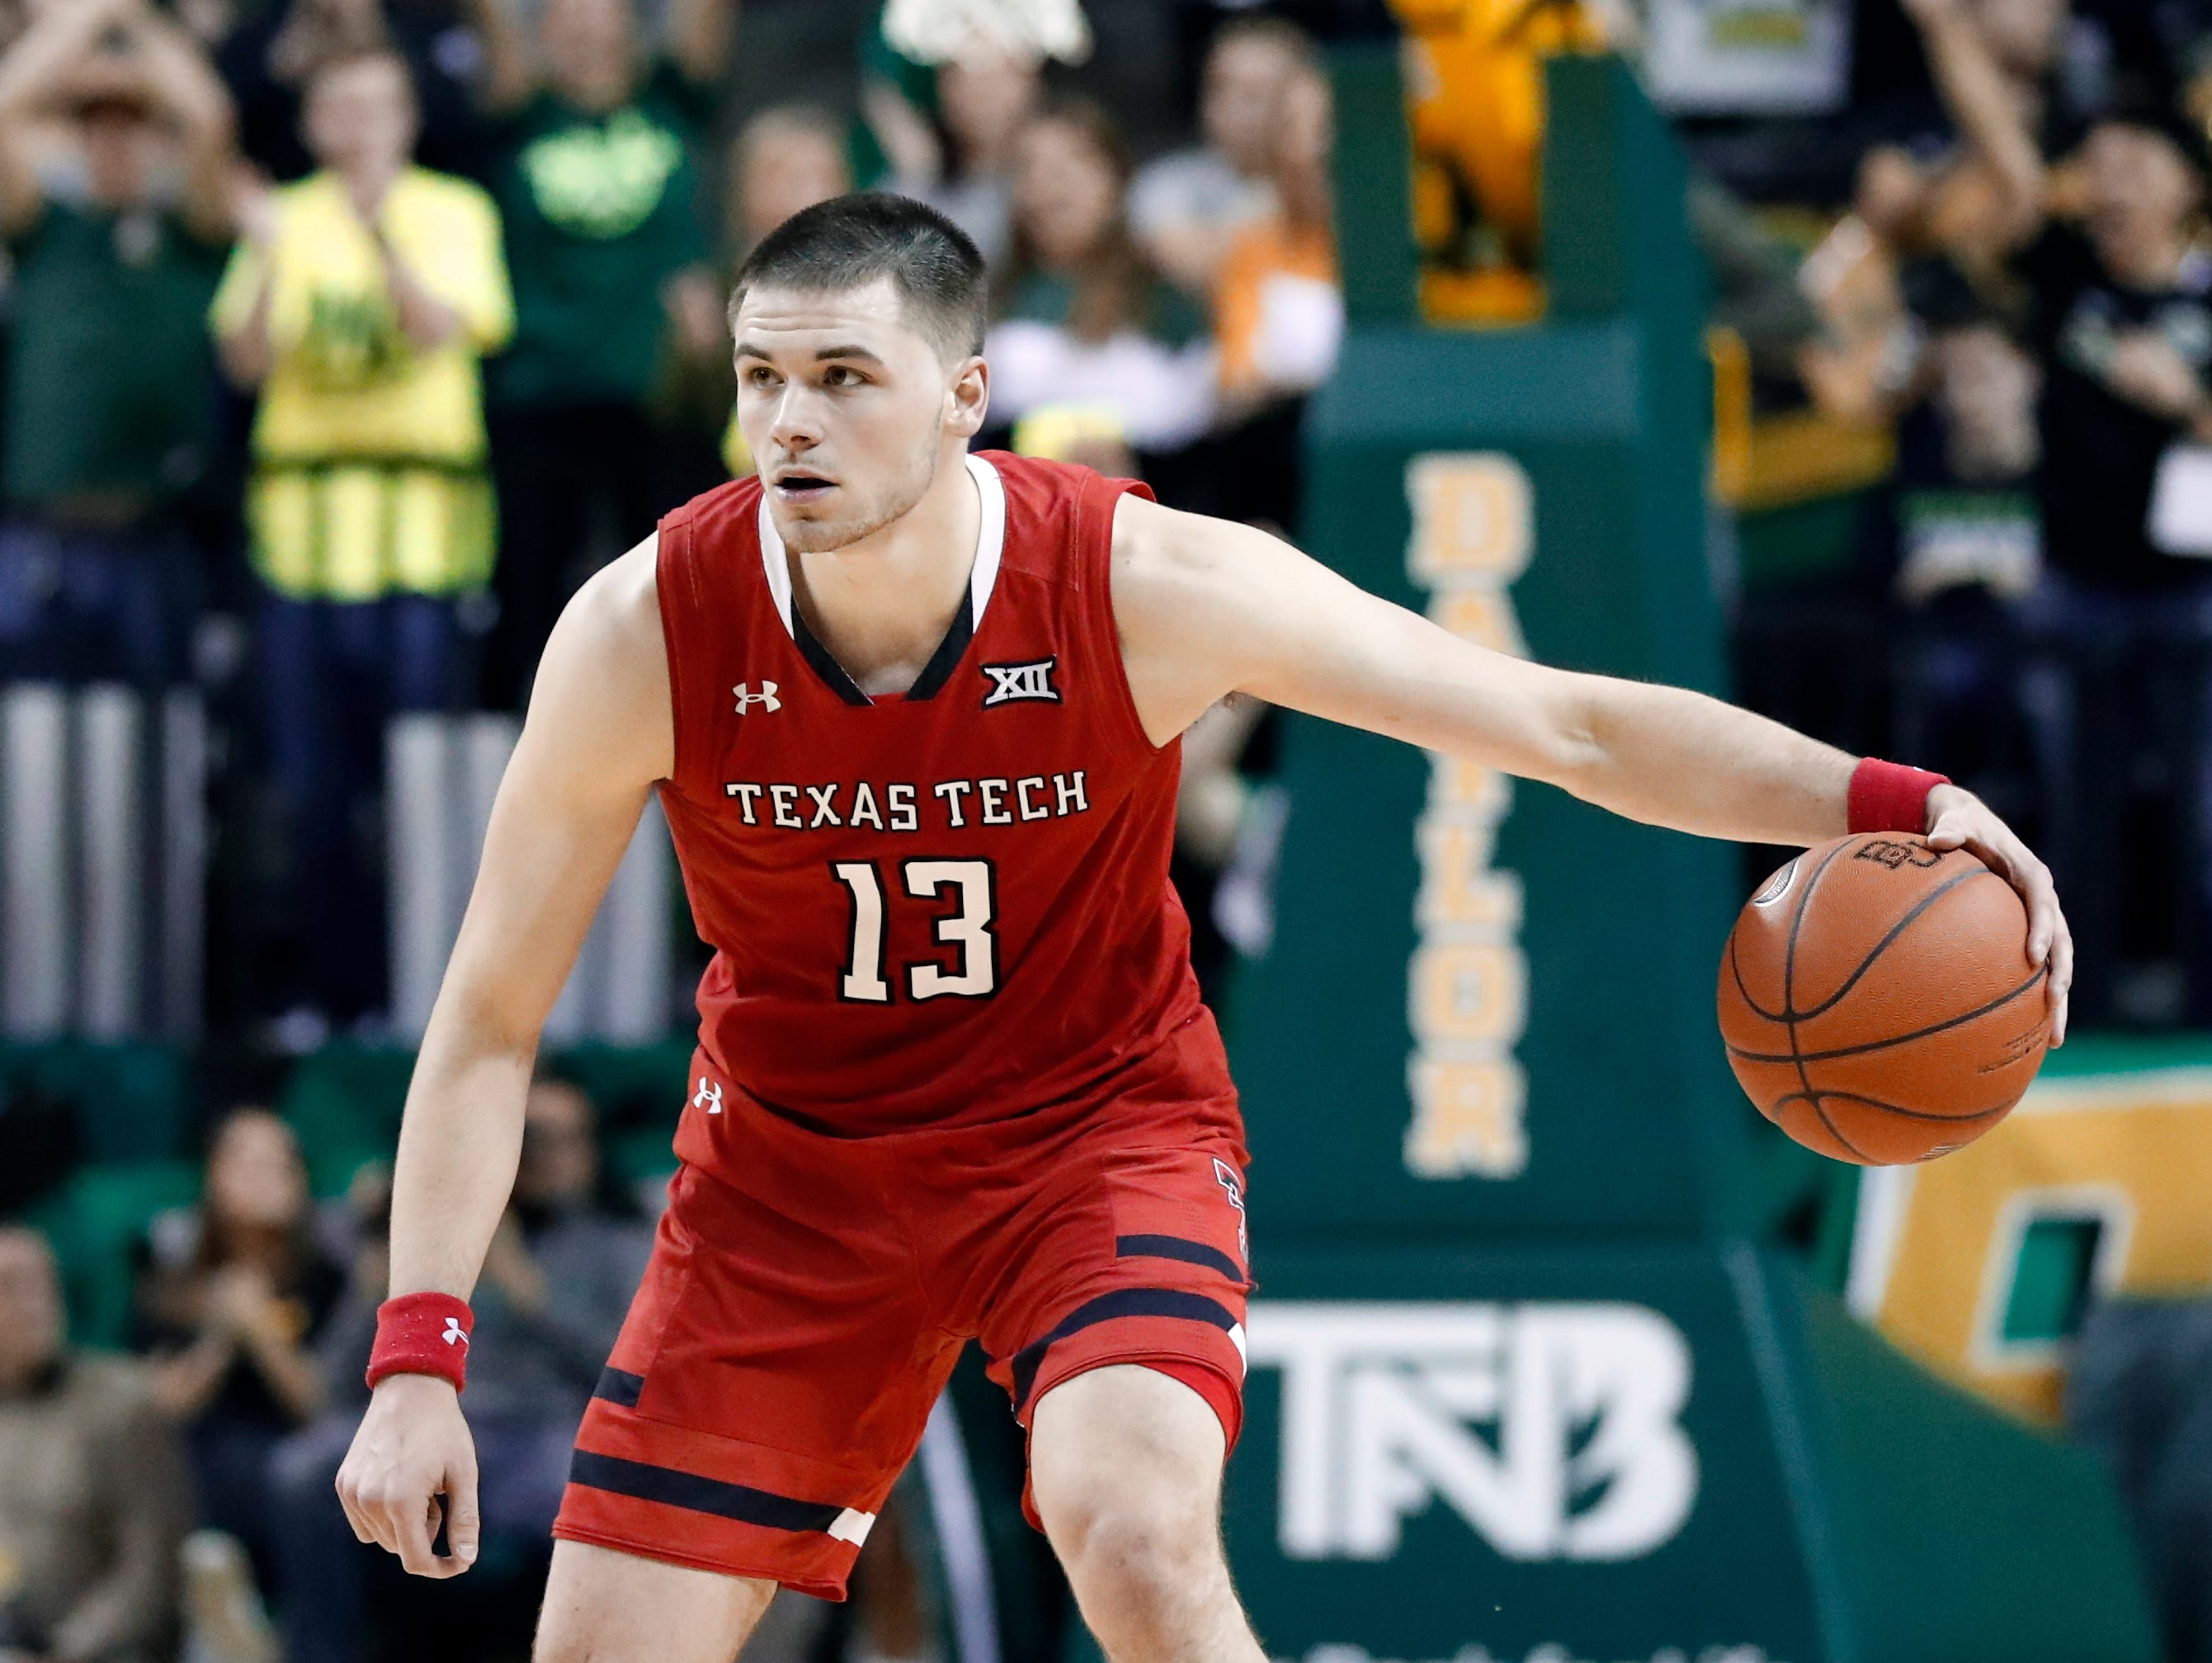 Texas Tech guard Matt Mooney (13) handles the ball during an NCAA college basketball game against Baylor on Saturday, Jan. 19, 2019, in Waco, Texas. (AP Photo/Tony Gutierrez)